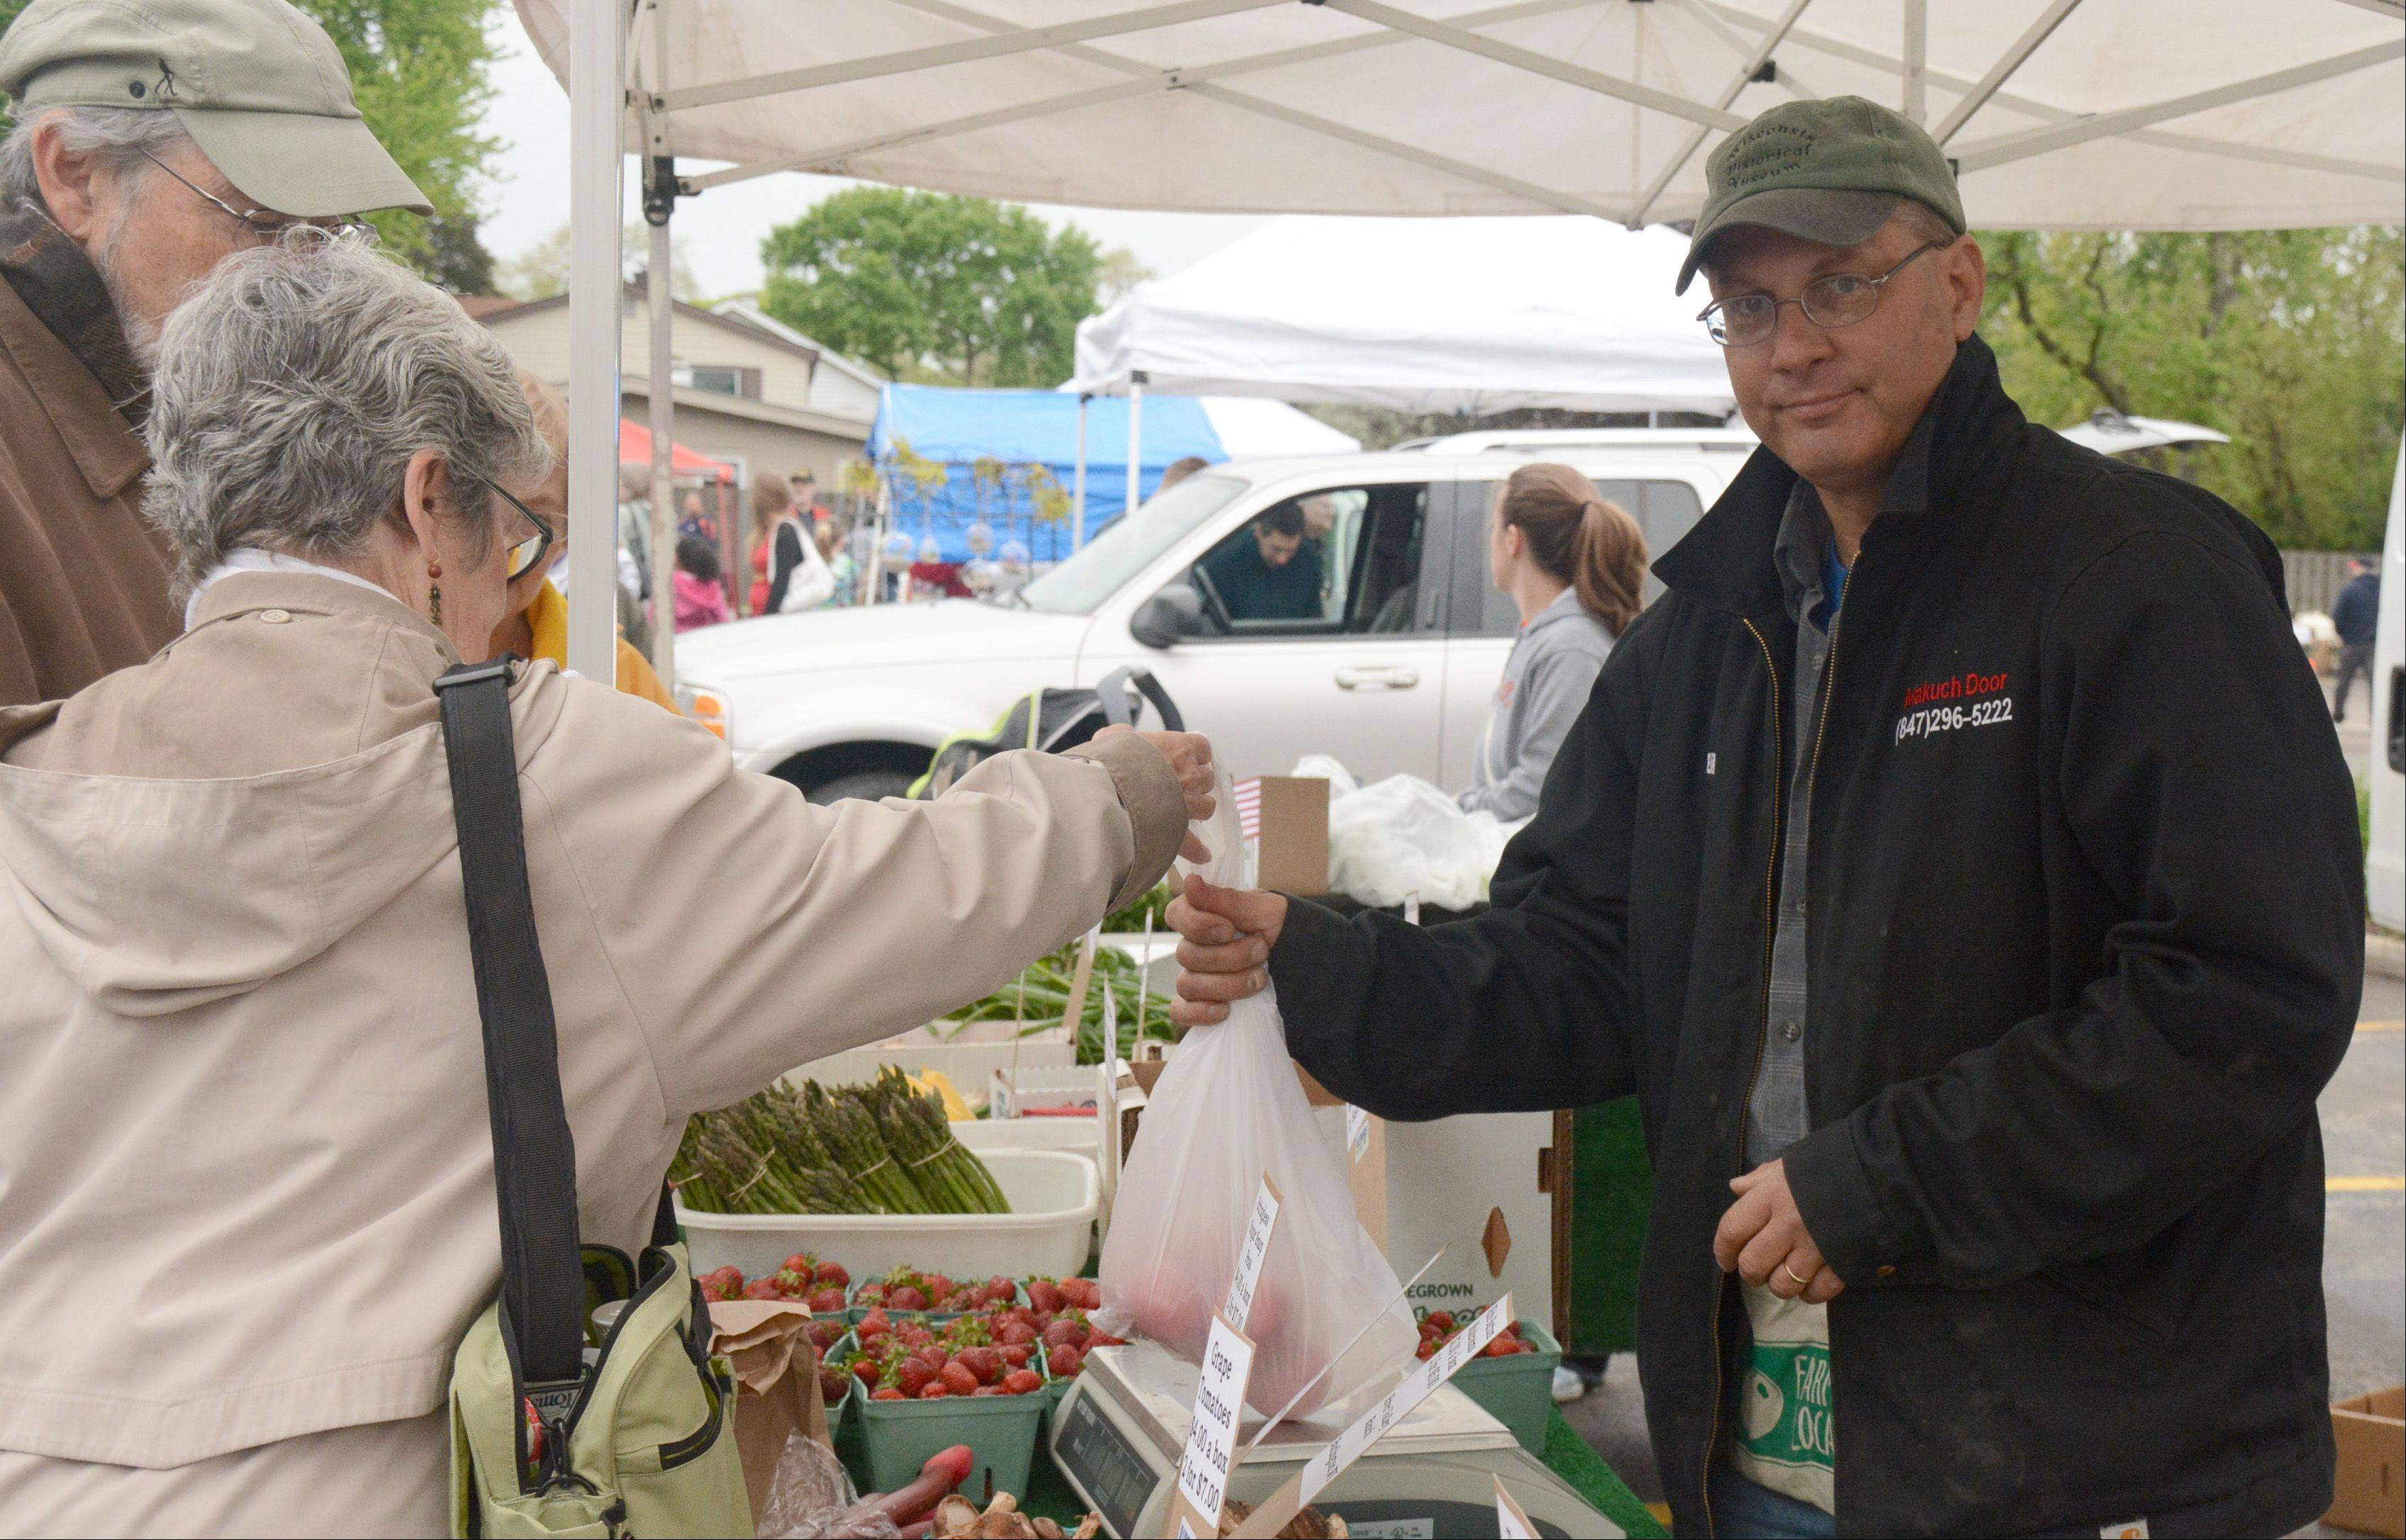 Bill Makuch sells fruit and vegetables at the Rolling Meadows' Farmers Market/Food Truck inauguration.